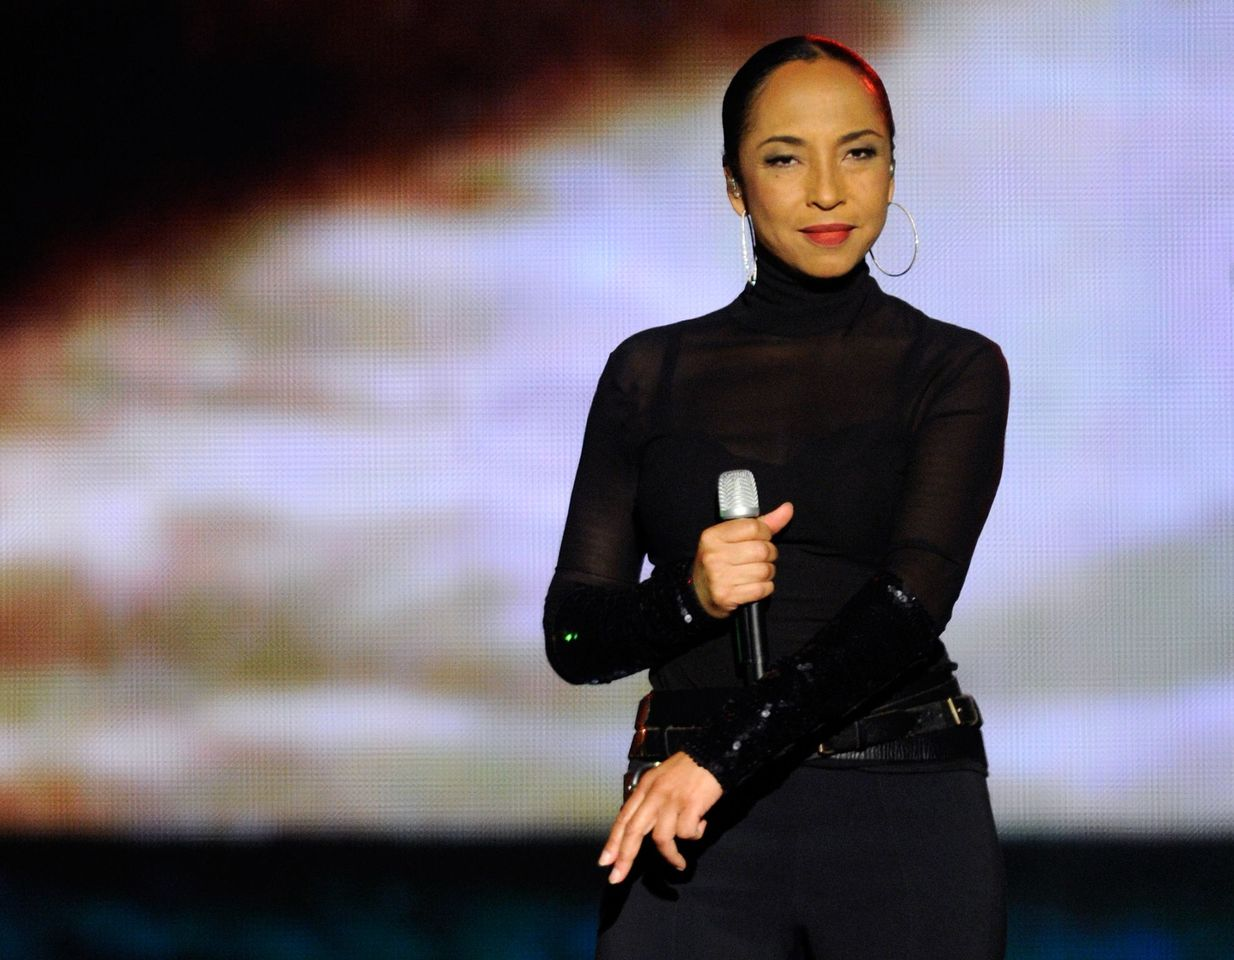 Sade at the MGM Grand Garden Arena on September 3, 2011 in Las Vegas, Nevada. | Source: Getty Images